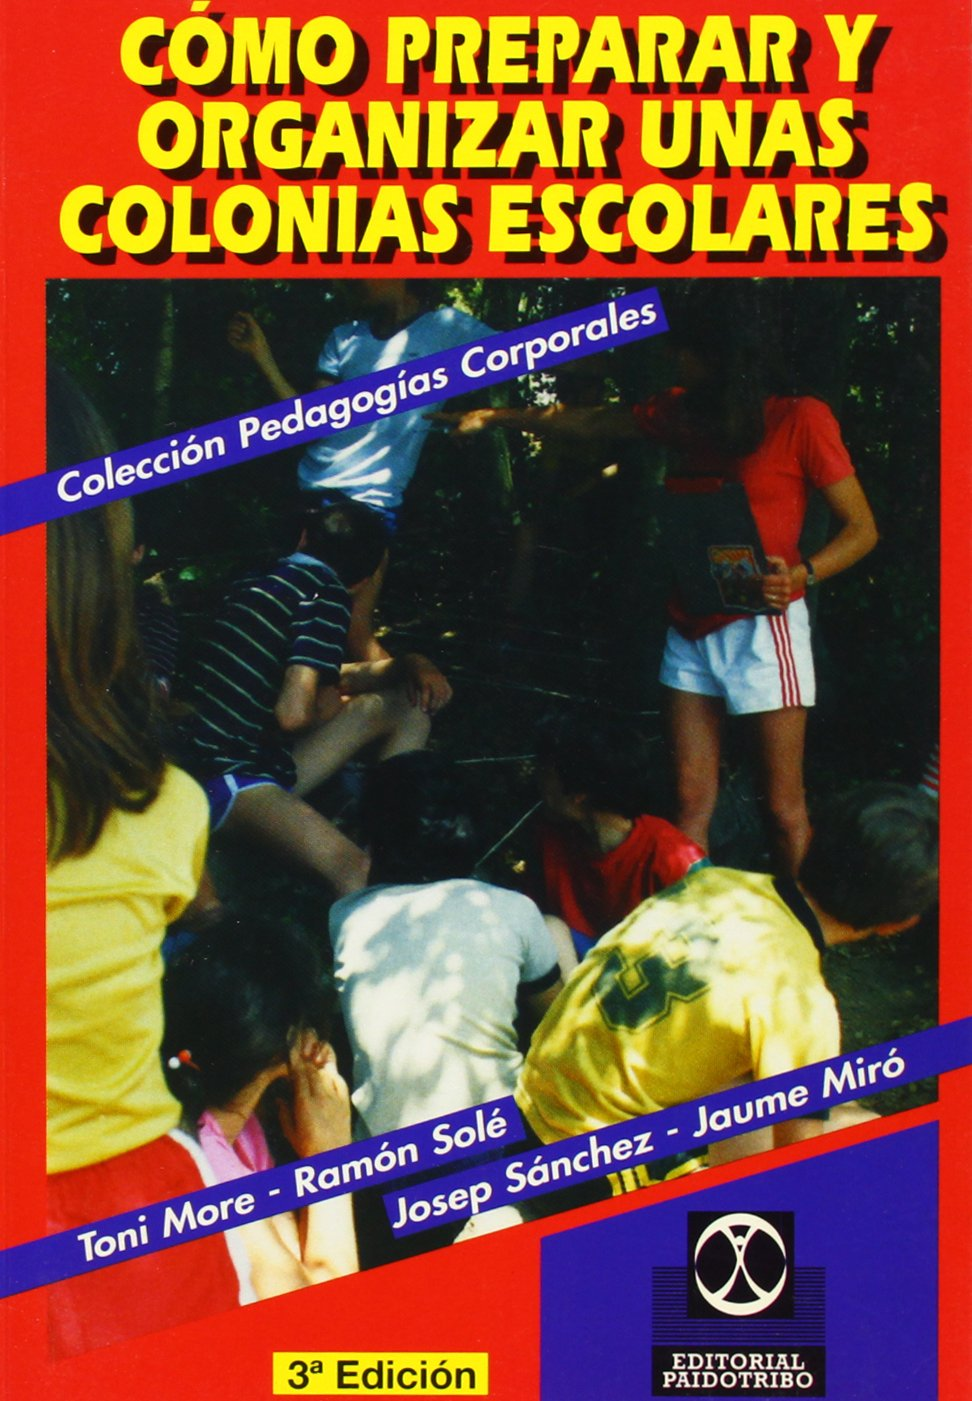 Como Preparar y Organizar Unas Colonias Escolares (Spanish Edition): Toni More: 9788480190077: Amazon.com: Books